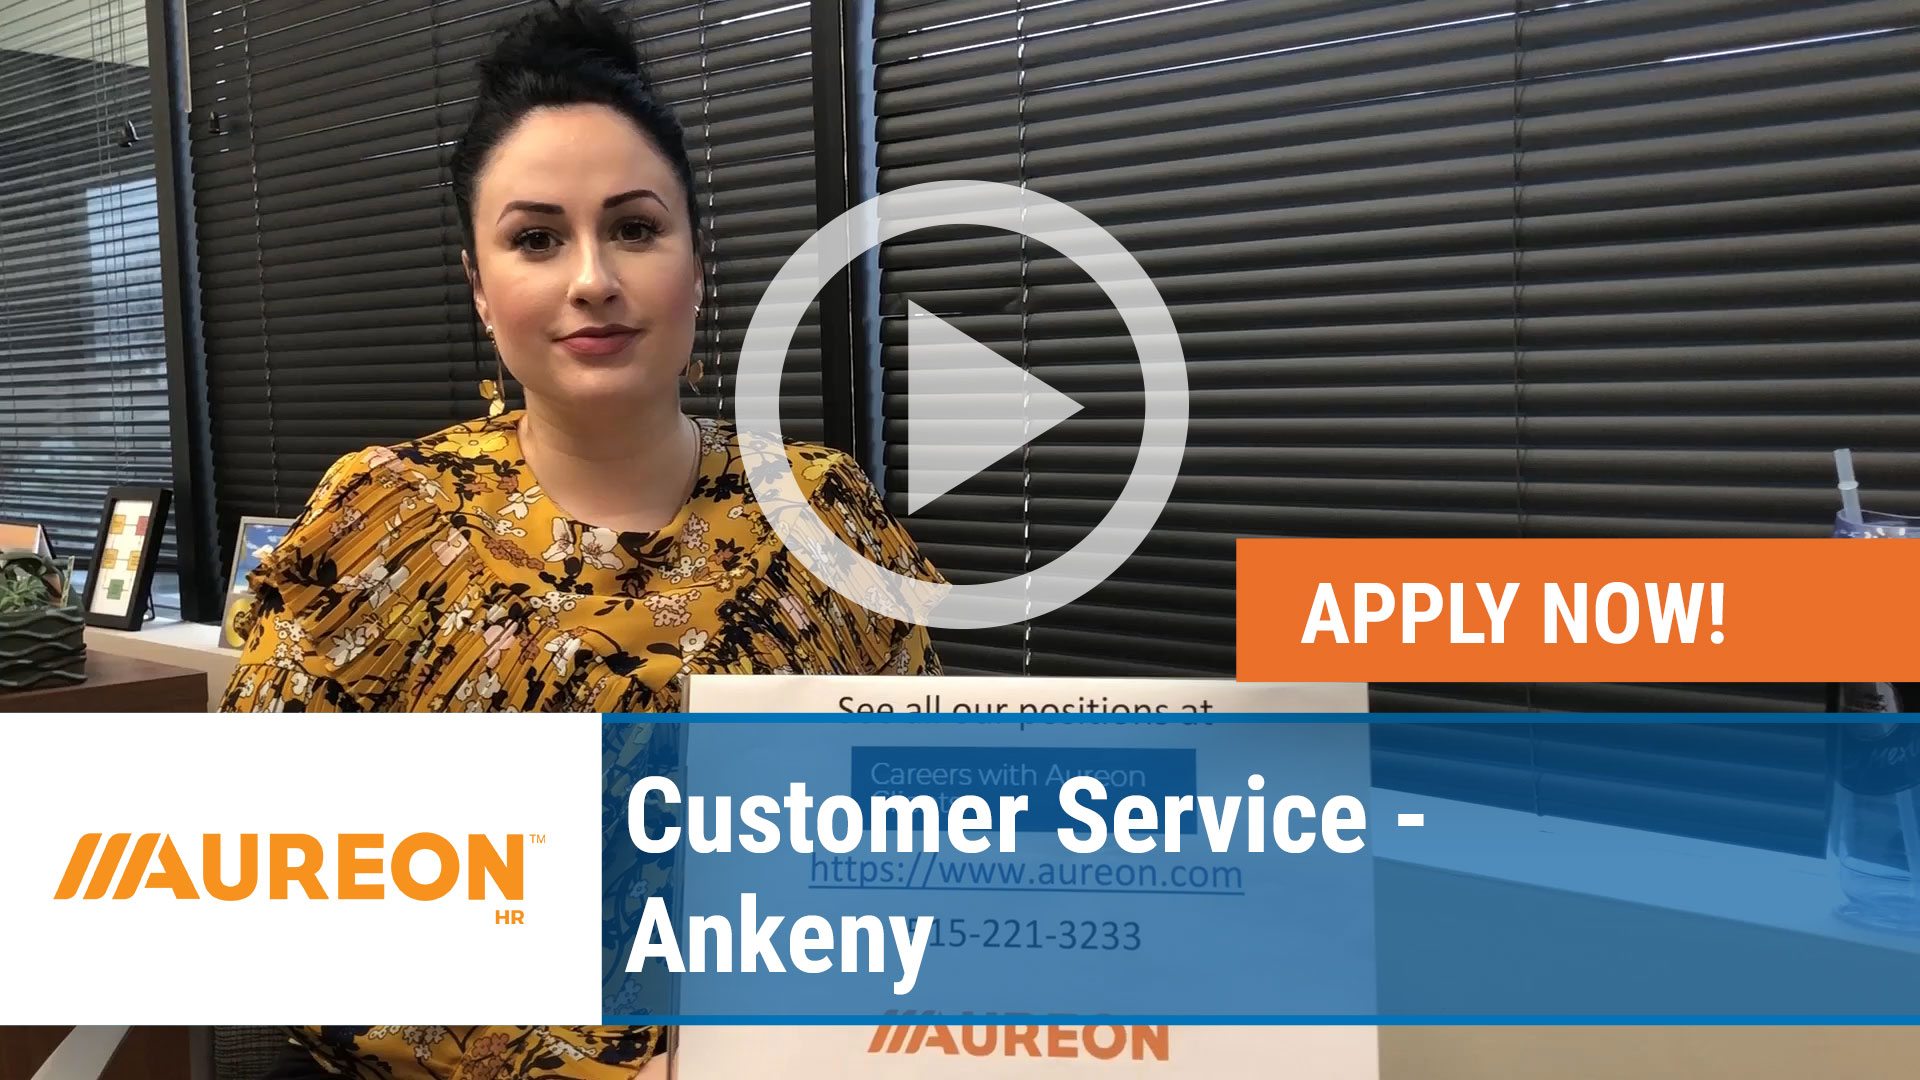 Watch our careers video for available job opening Customer Service - Ankeny in Ankeny